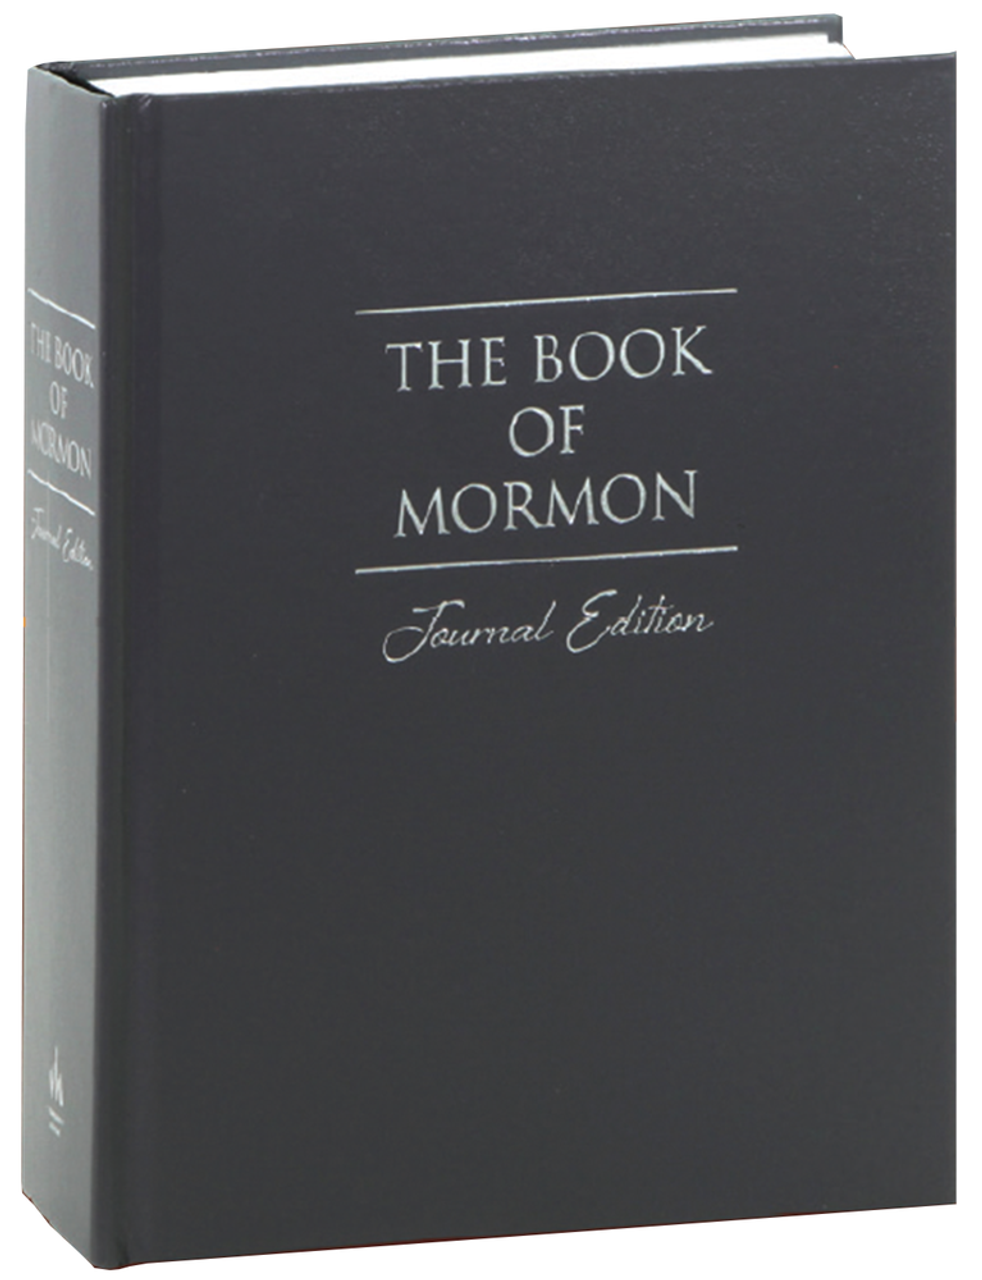 Book of Mormon Journal Edition (Hardcover)*